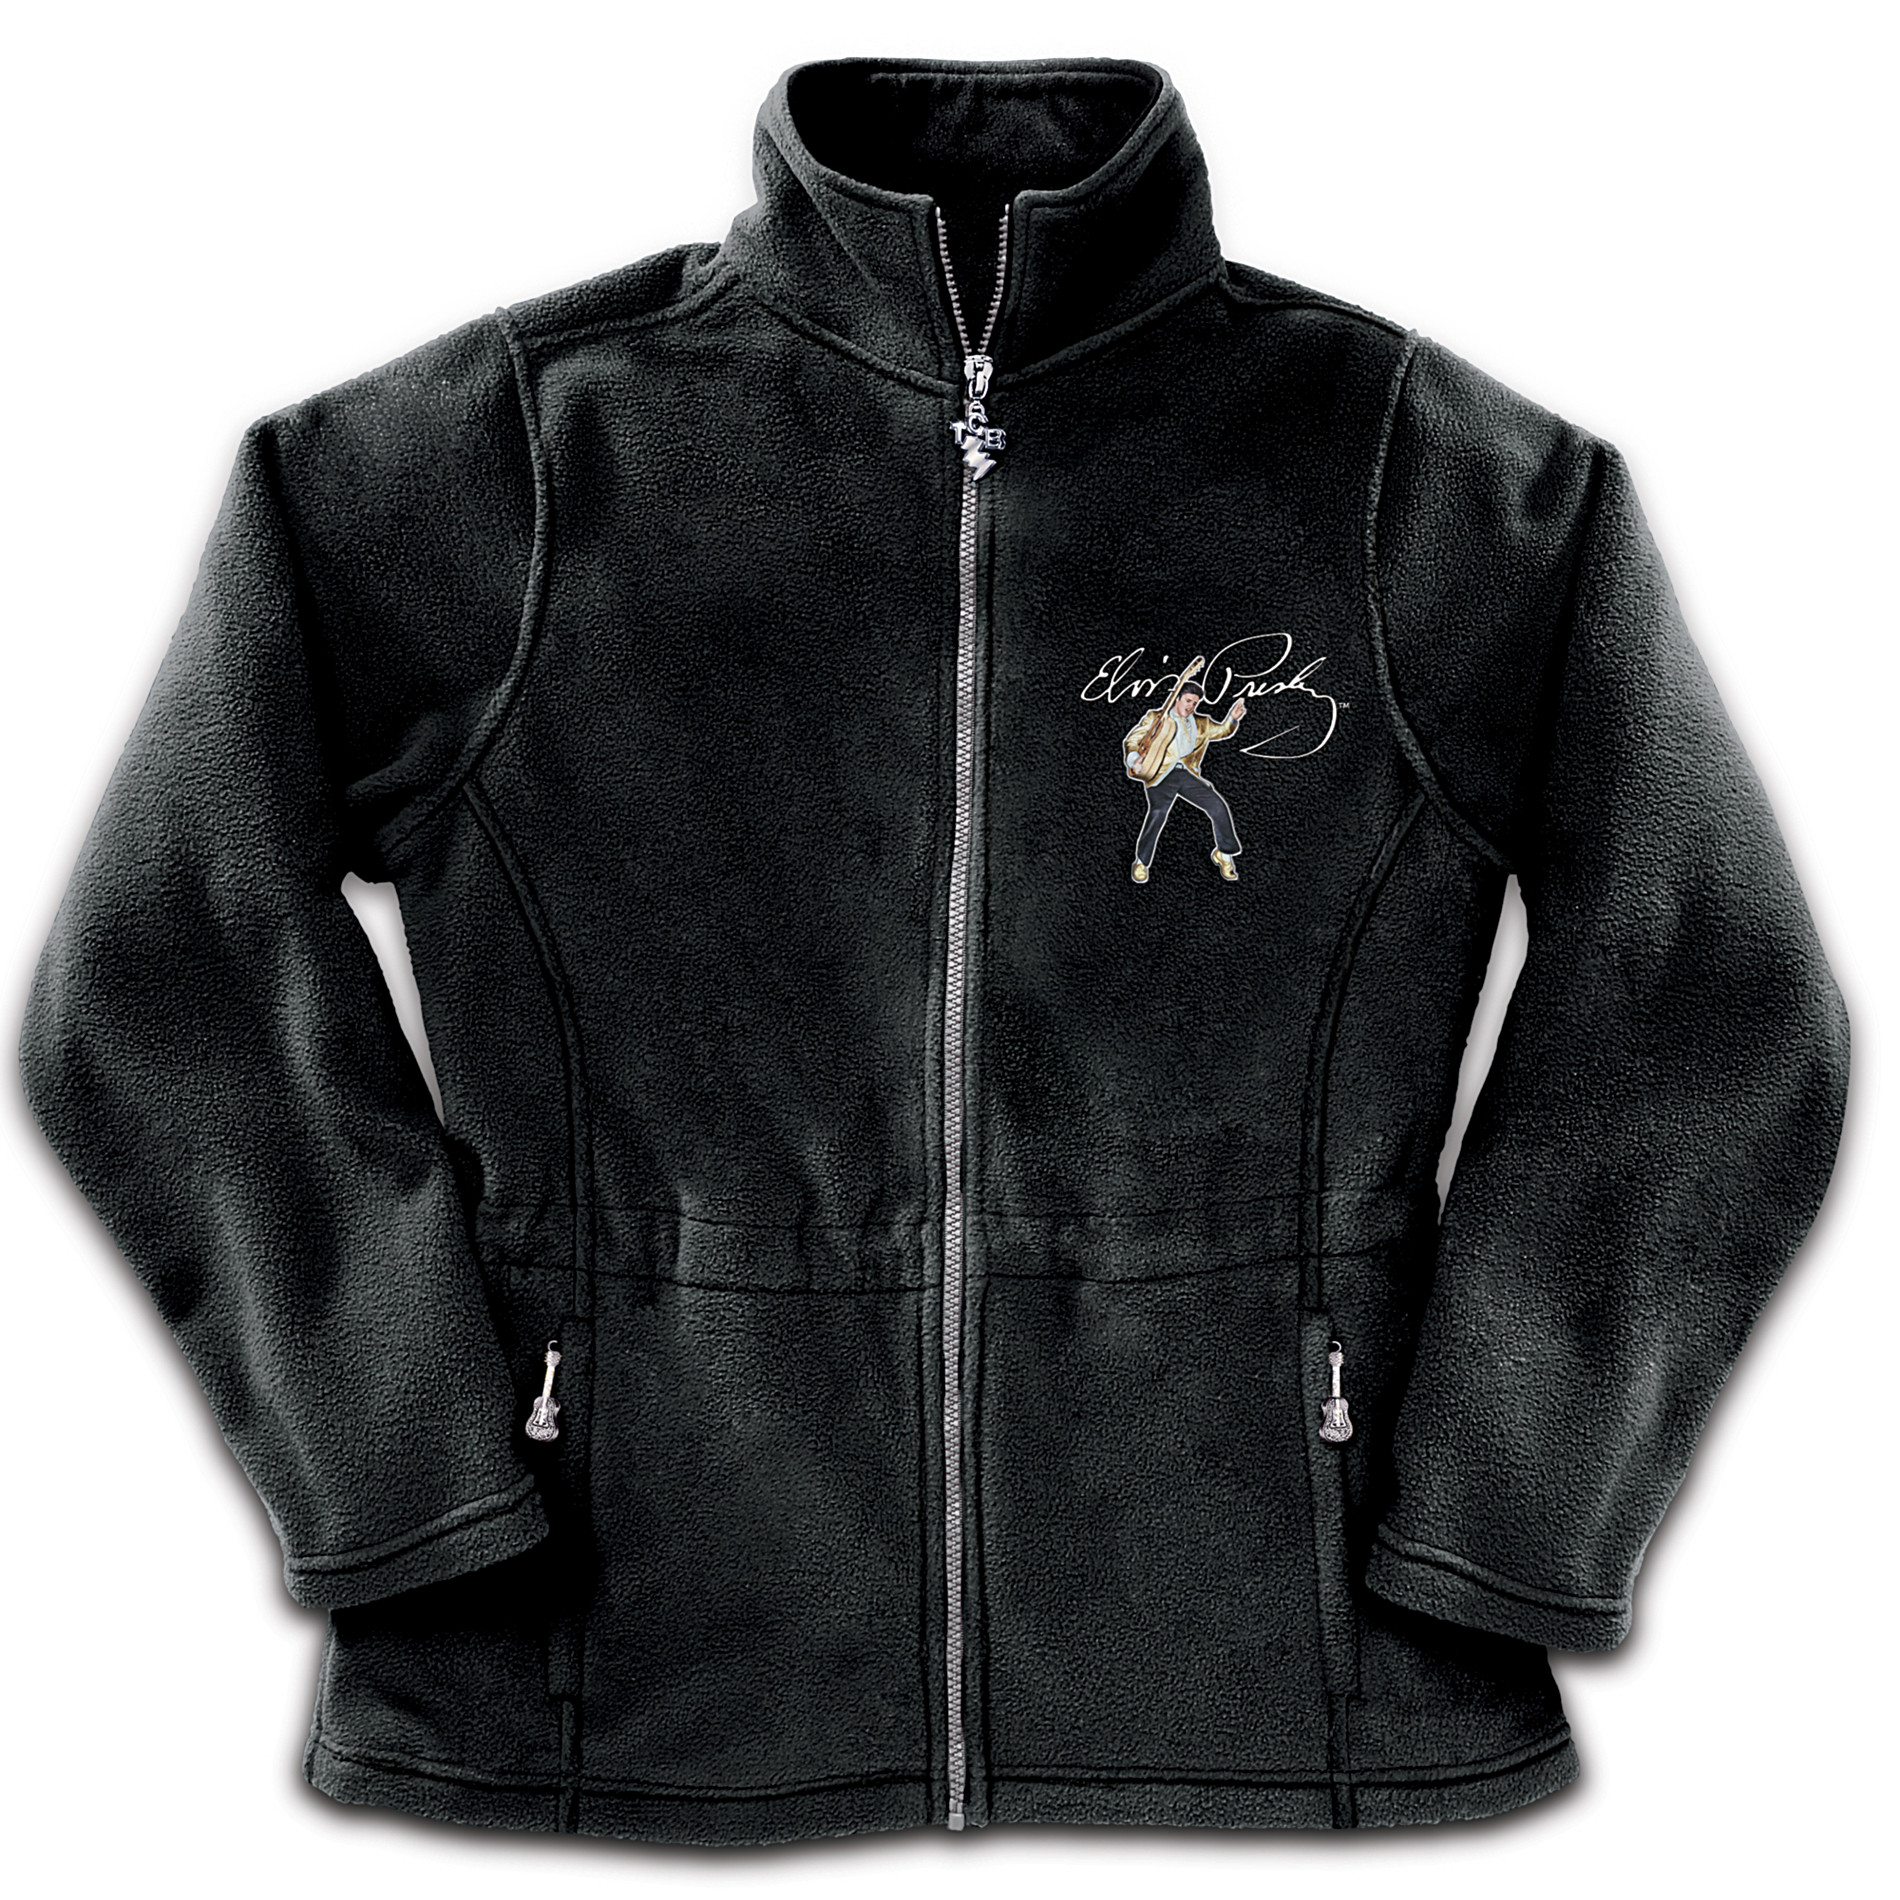 The Bradford Exchange Elvis: Dressed To Thrill Women's Fleece Jacket at Sears.com